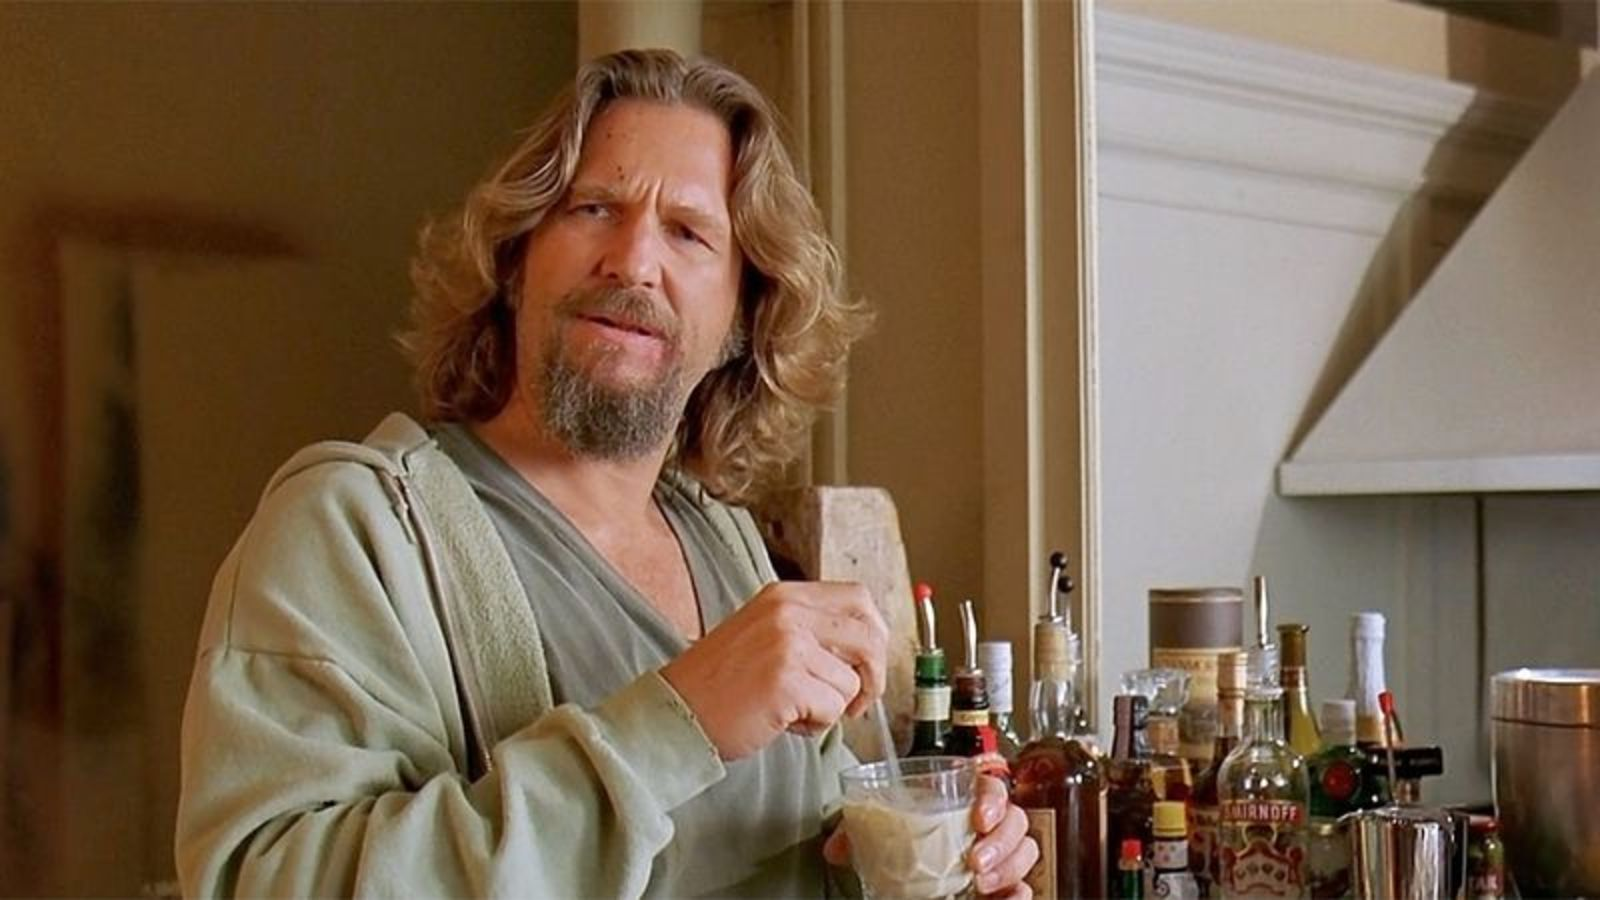 big-lebowski-white-russian-cocktail-movie.jpg